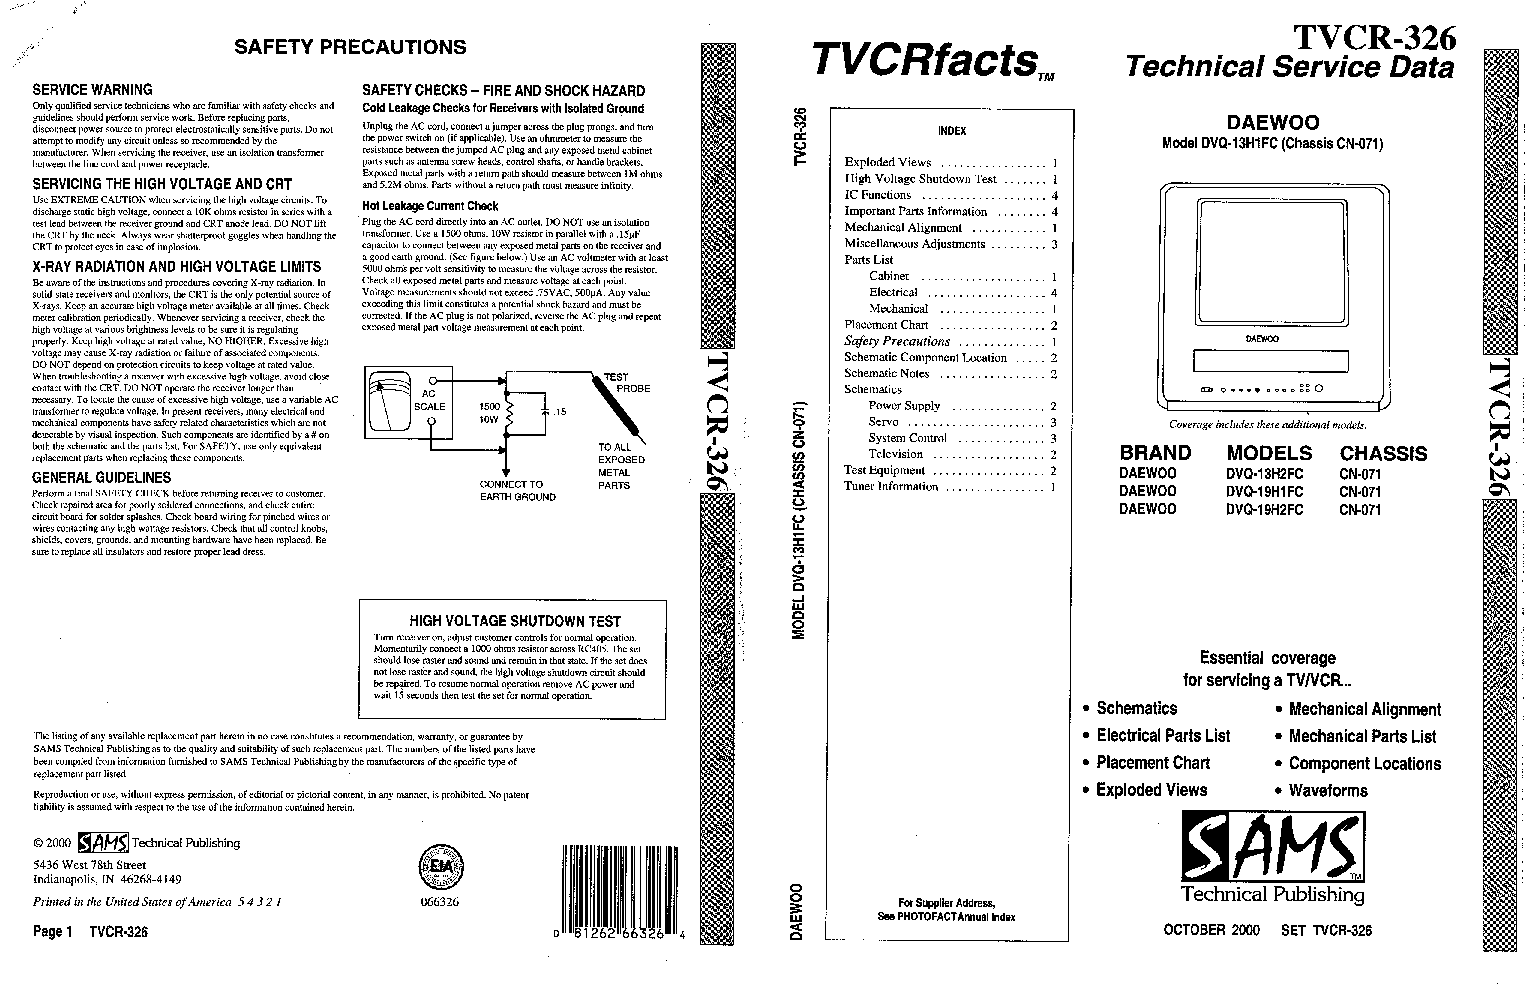 daewoo ctf2162 service manual download  schematics  eeprom